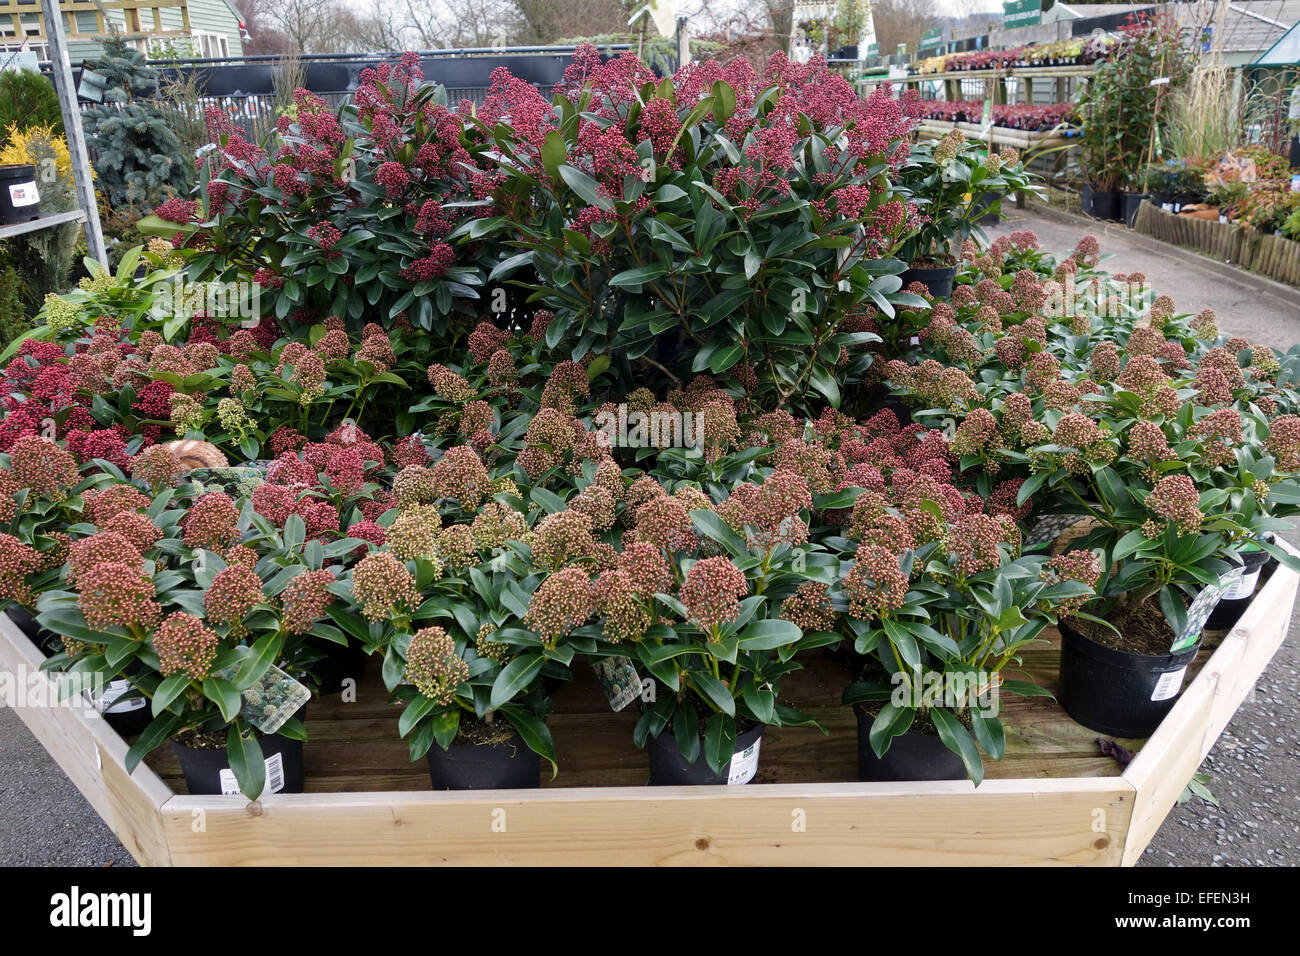 Skimmia japonica 'Rubella' & 'Fragrant Cloud' on san English garden centre - Stock Image